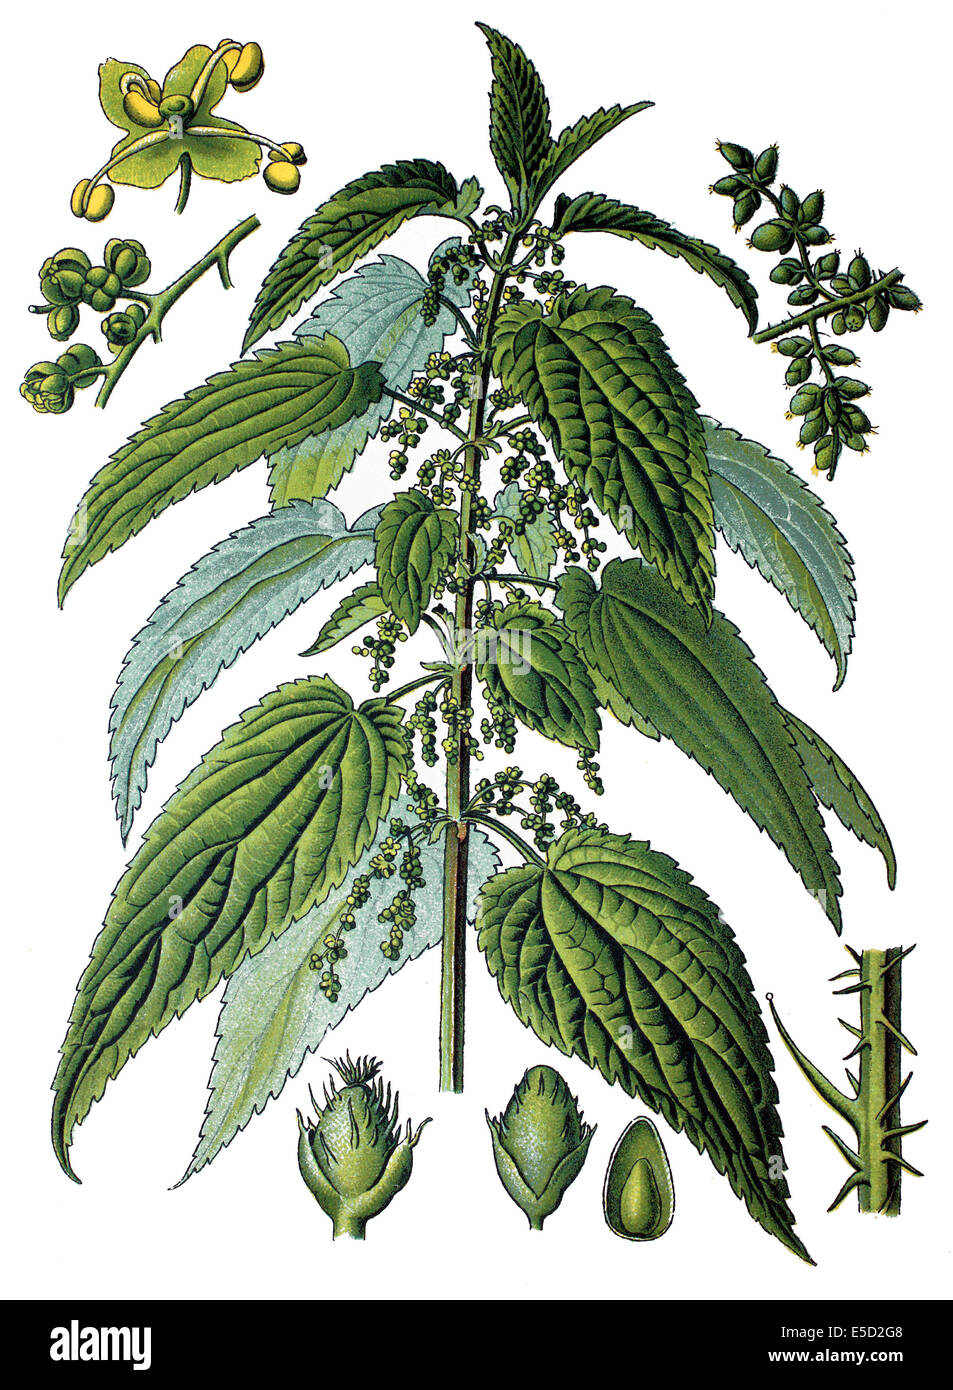 Urtica dioica, often called common nettle or stinging nettle - Stock Image